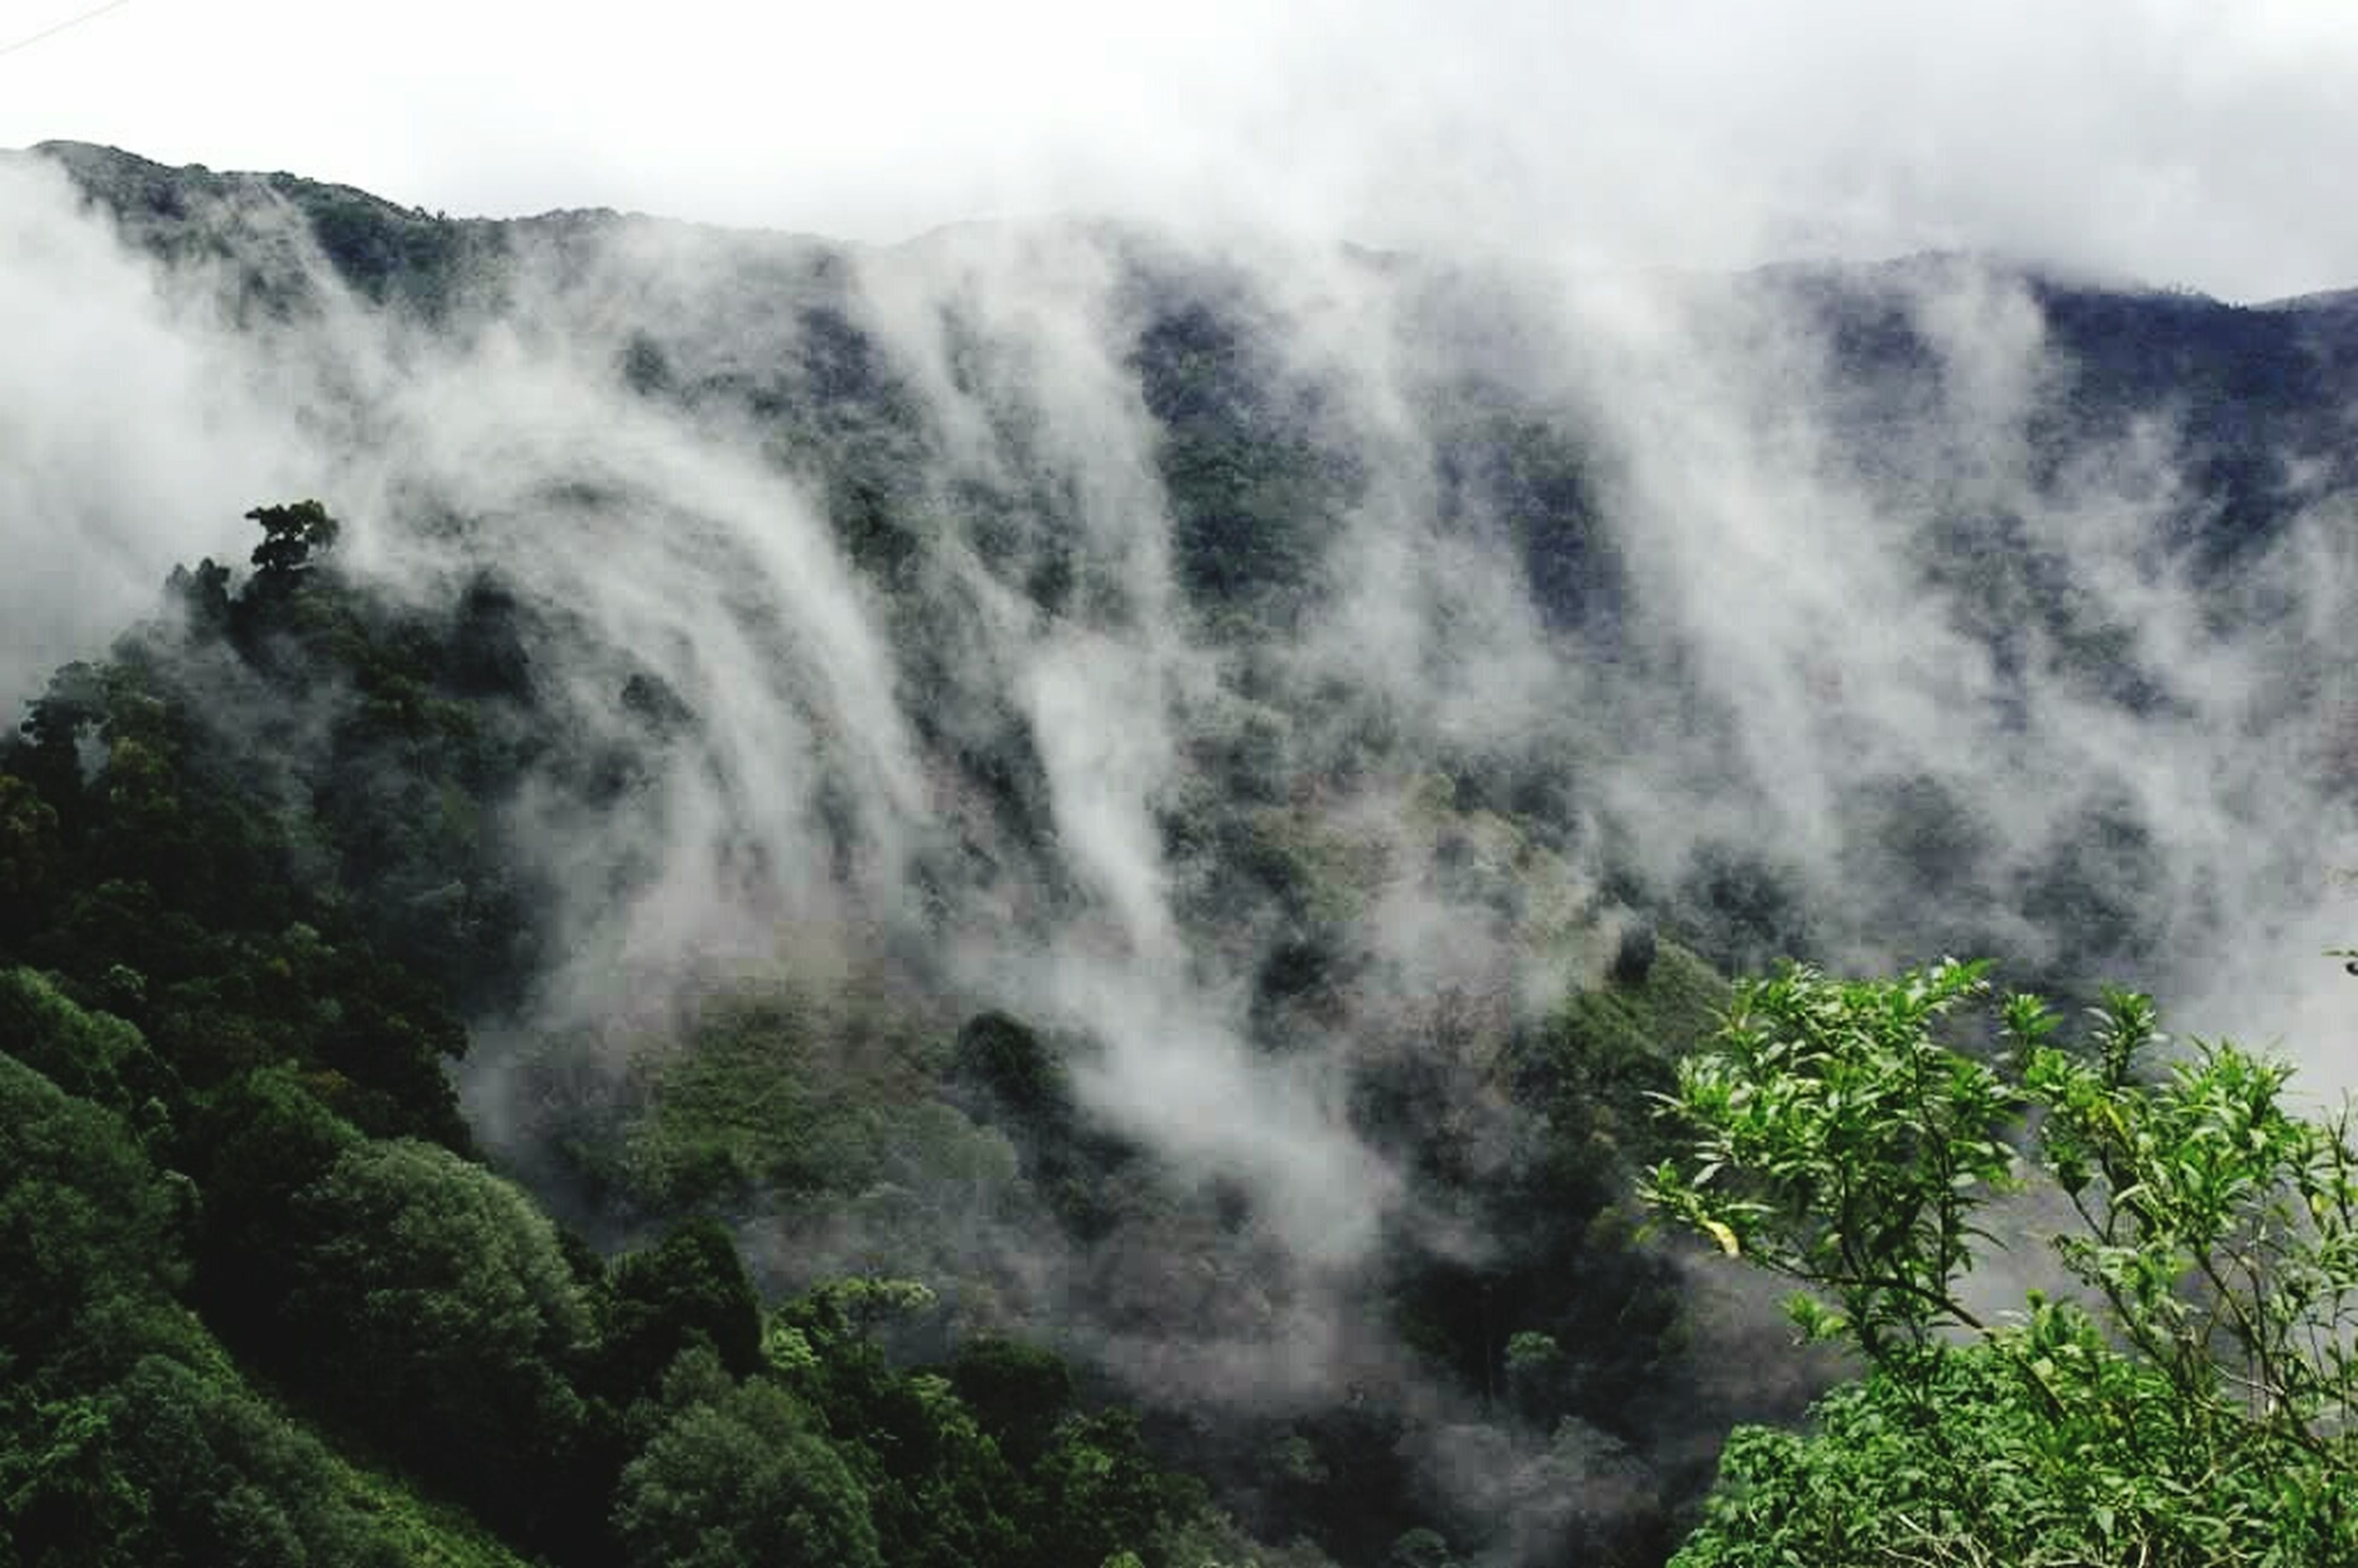 nature, beauty in nature, scenics, tree, no people, tranquil scene, outdoors, growth, tranquility, mountain, day, fog, physical geography, plant, sky, waterfall, water